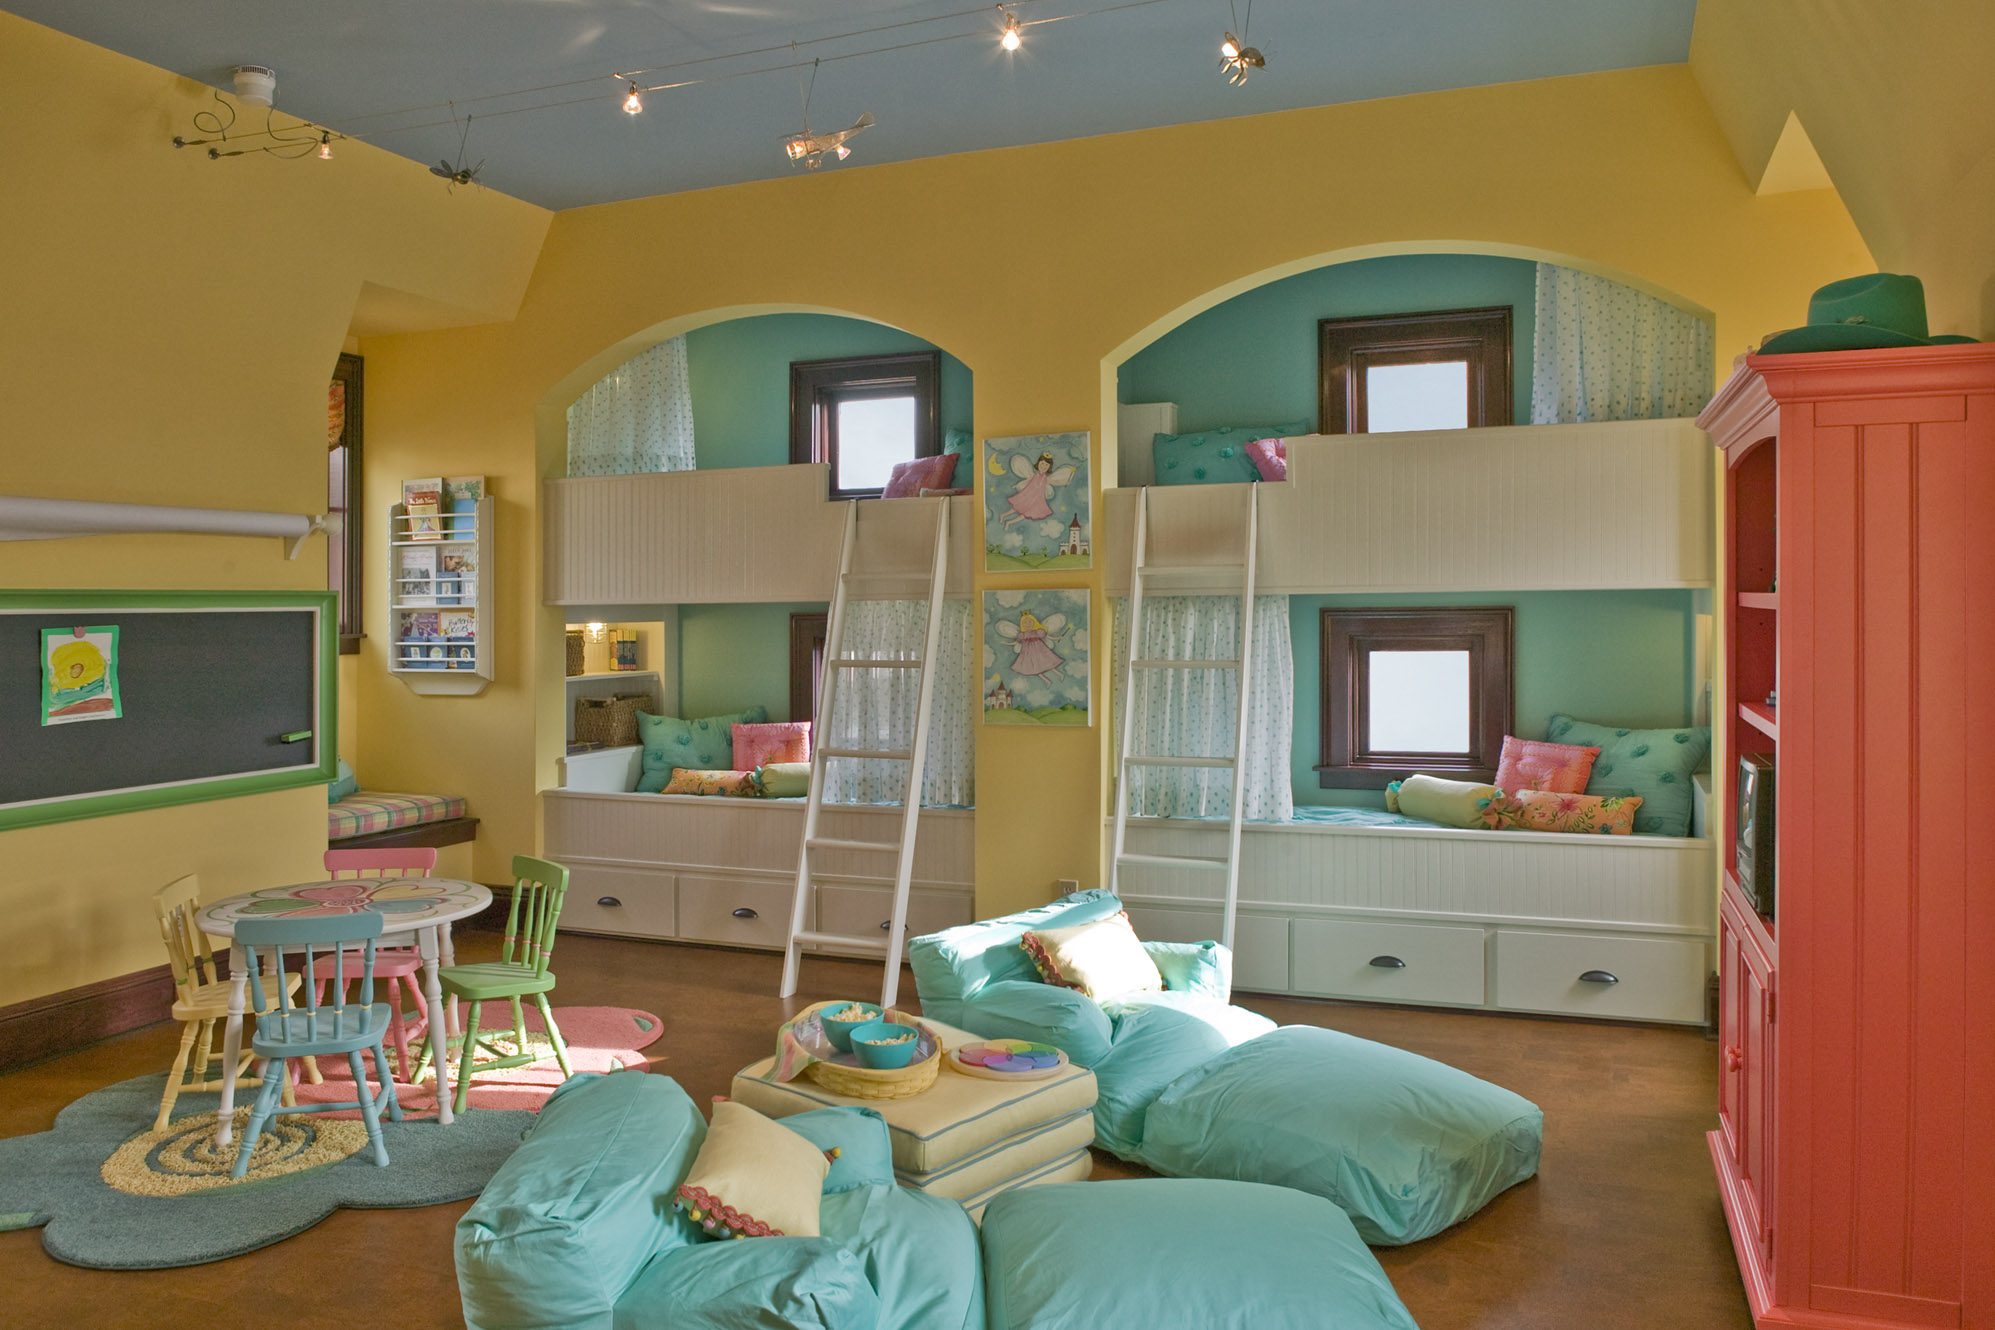 The ABC's of Decorating…K is for Kid's Rooms! | Decorating ...